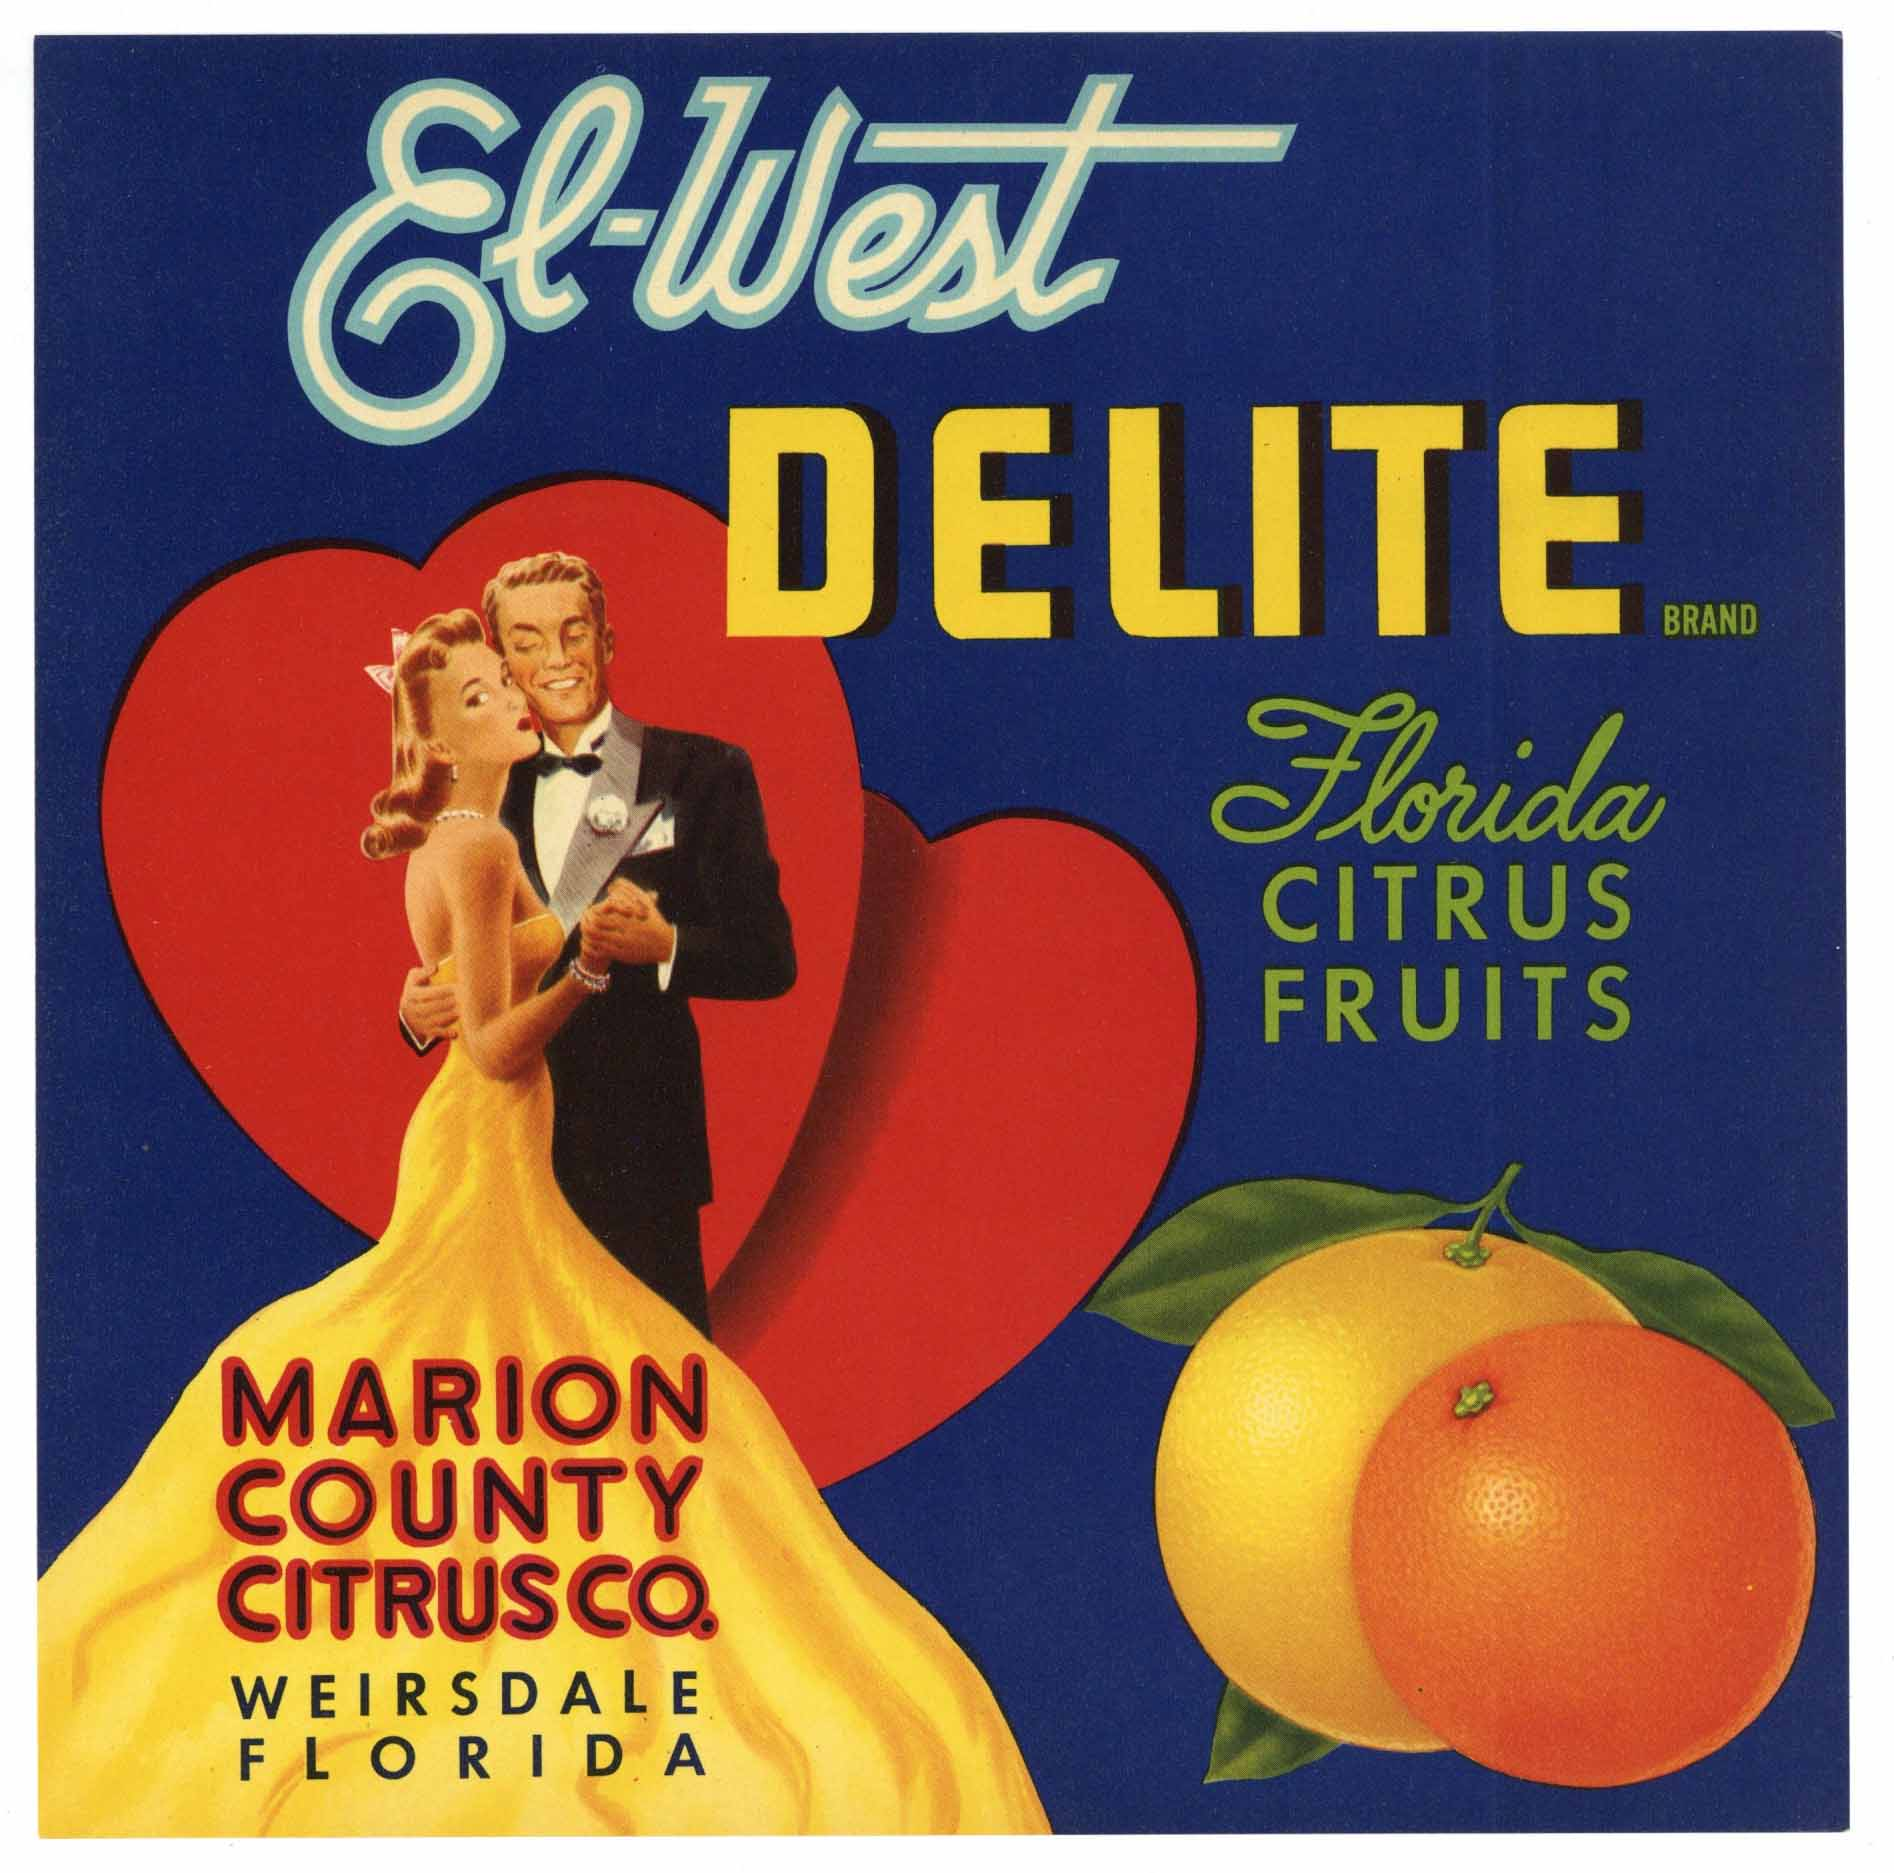 El-West Delite Brand Vintage Weirsdale Florida Citrus Crate Label